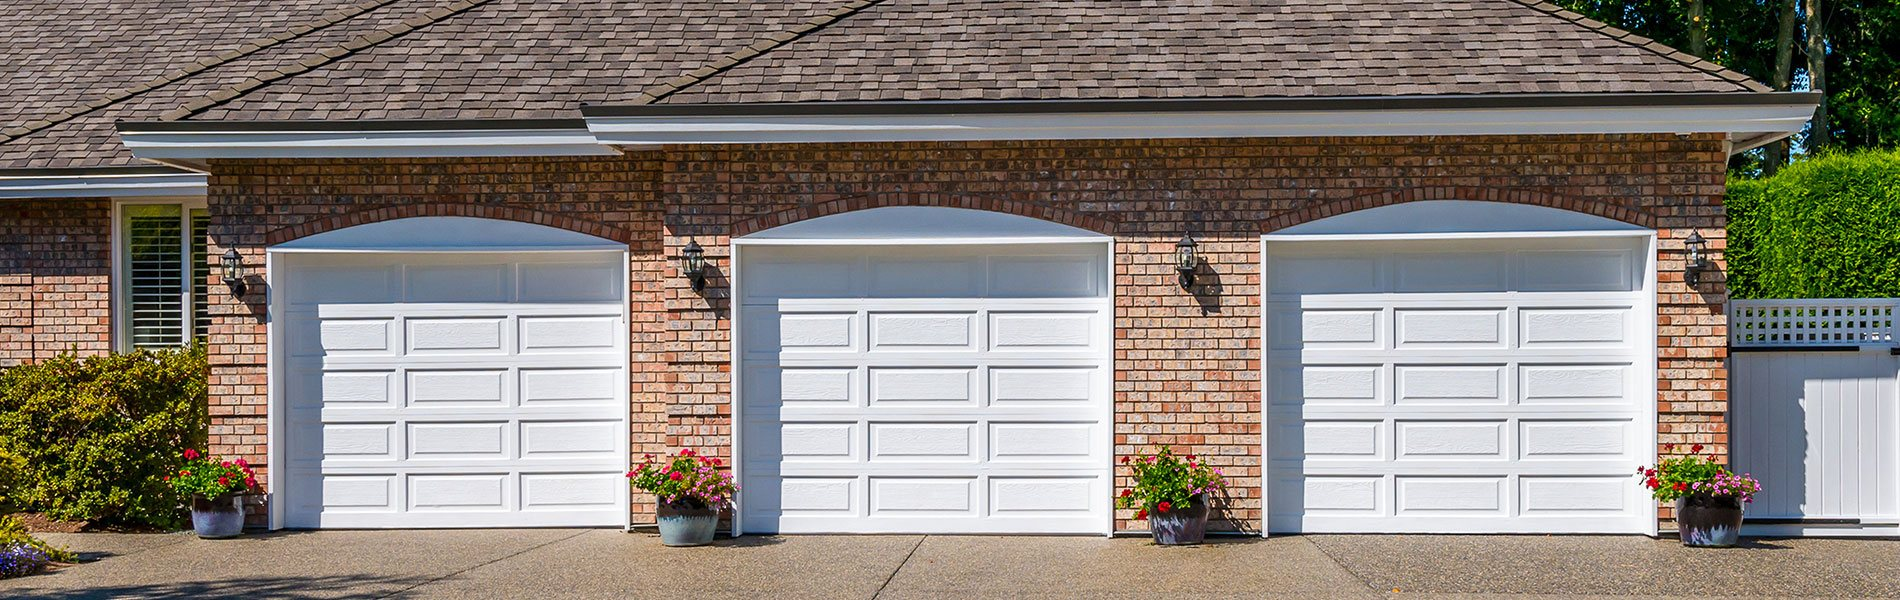 Galaxy Garage Door Service